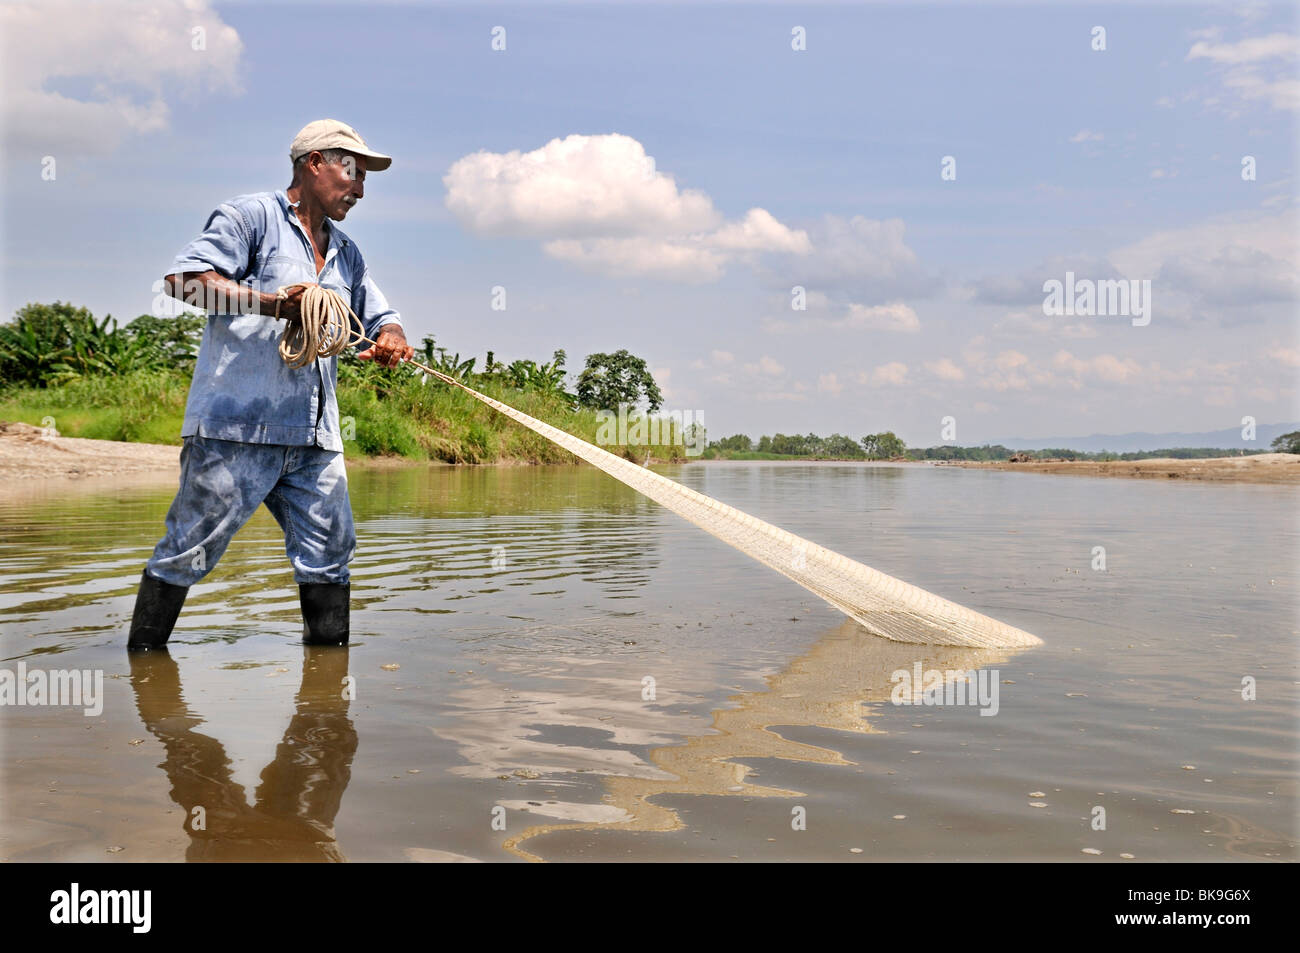 Fisherman tossing a net into the Rio Magdalena River, La Dorada, Caldas, Colombia, South America - Stock Image